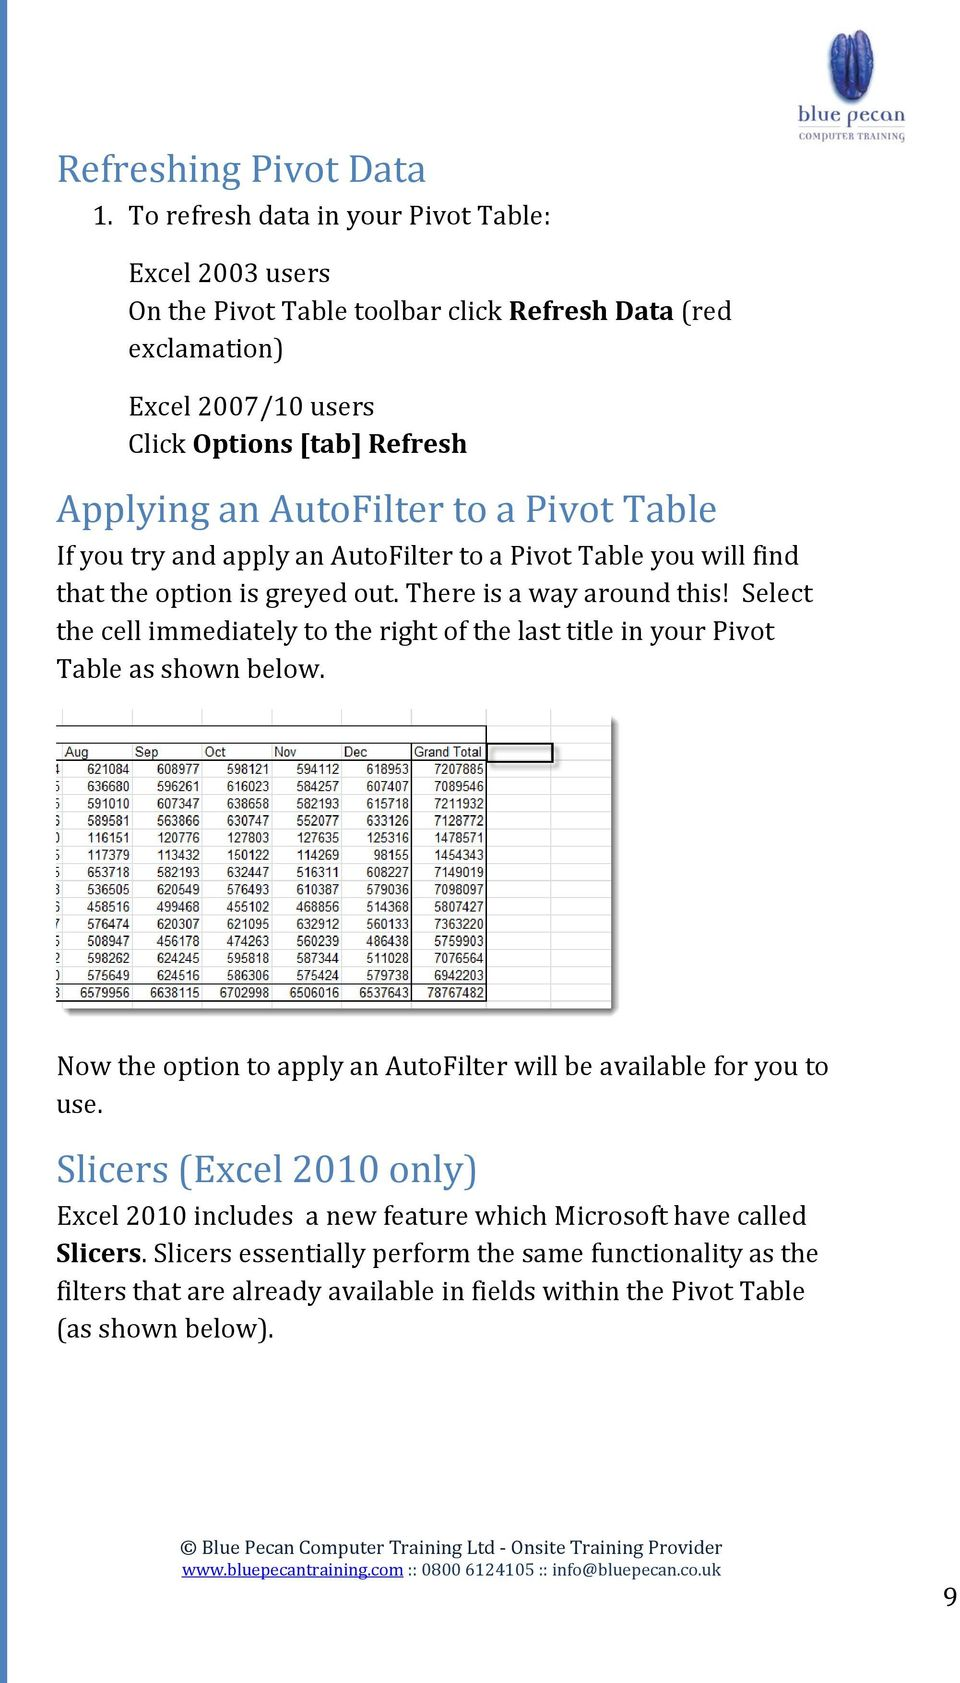 a Pivot Table If you try and apply an AutoFilter to a Pivot Table you will find that the option is greyed out. There is a way around this!